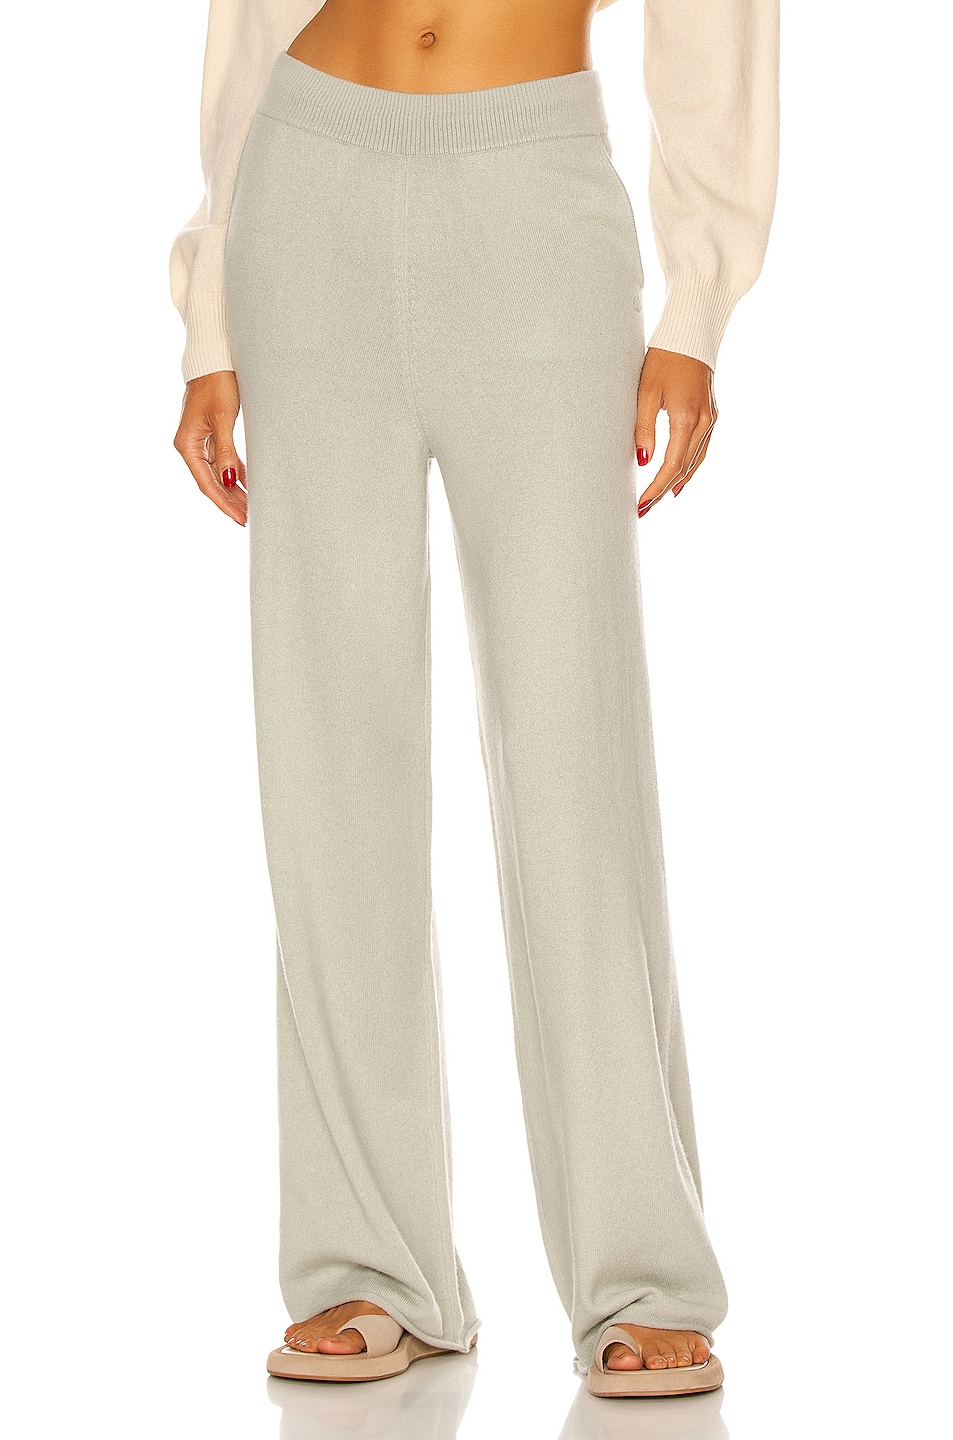 Image 1 of Loulou Studio Tioman Cashmere Pant in Almond